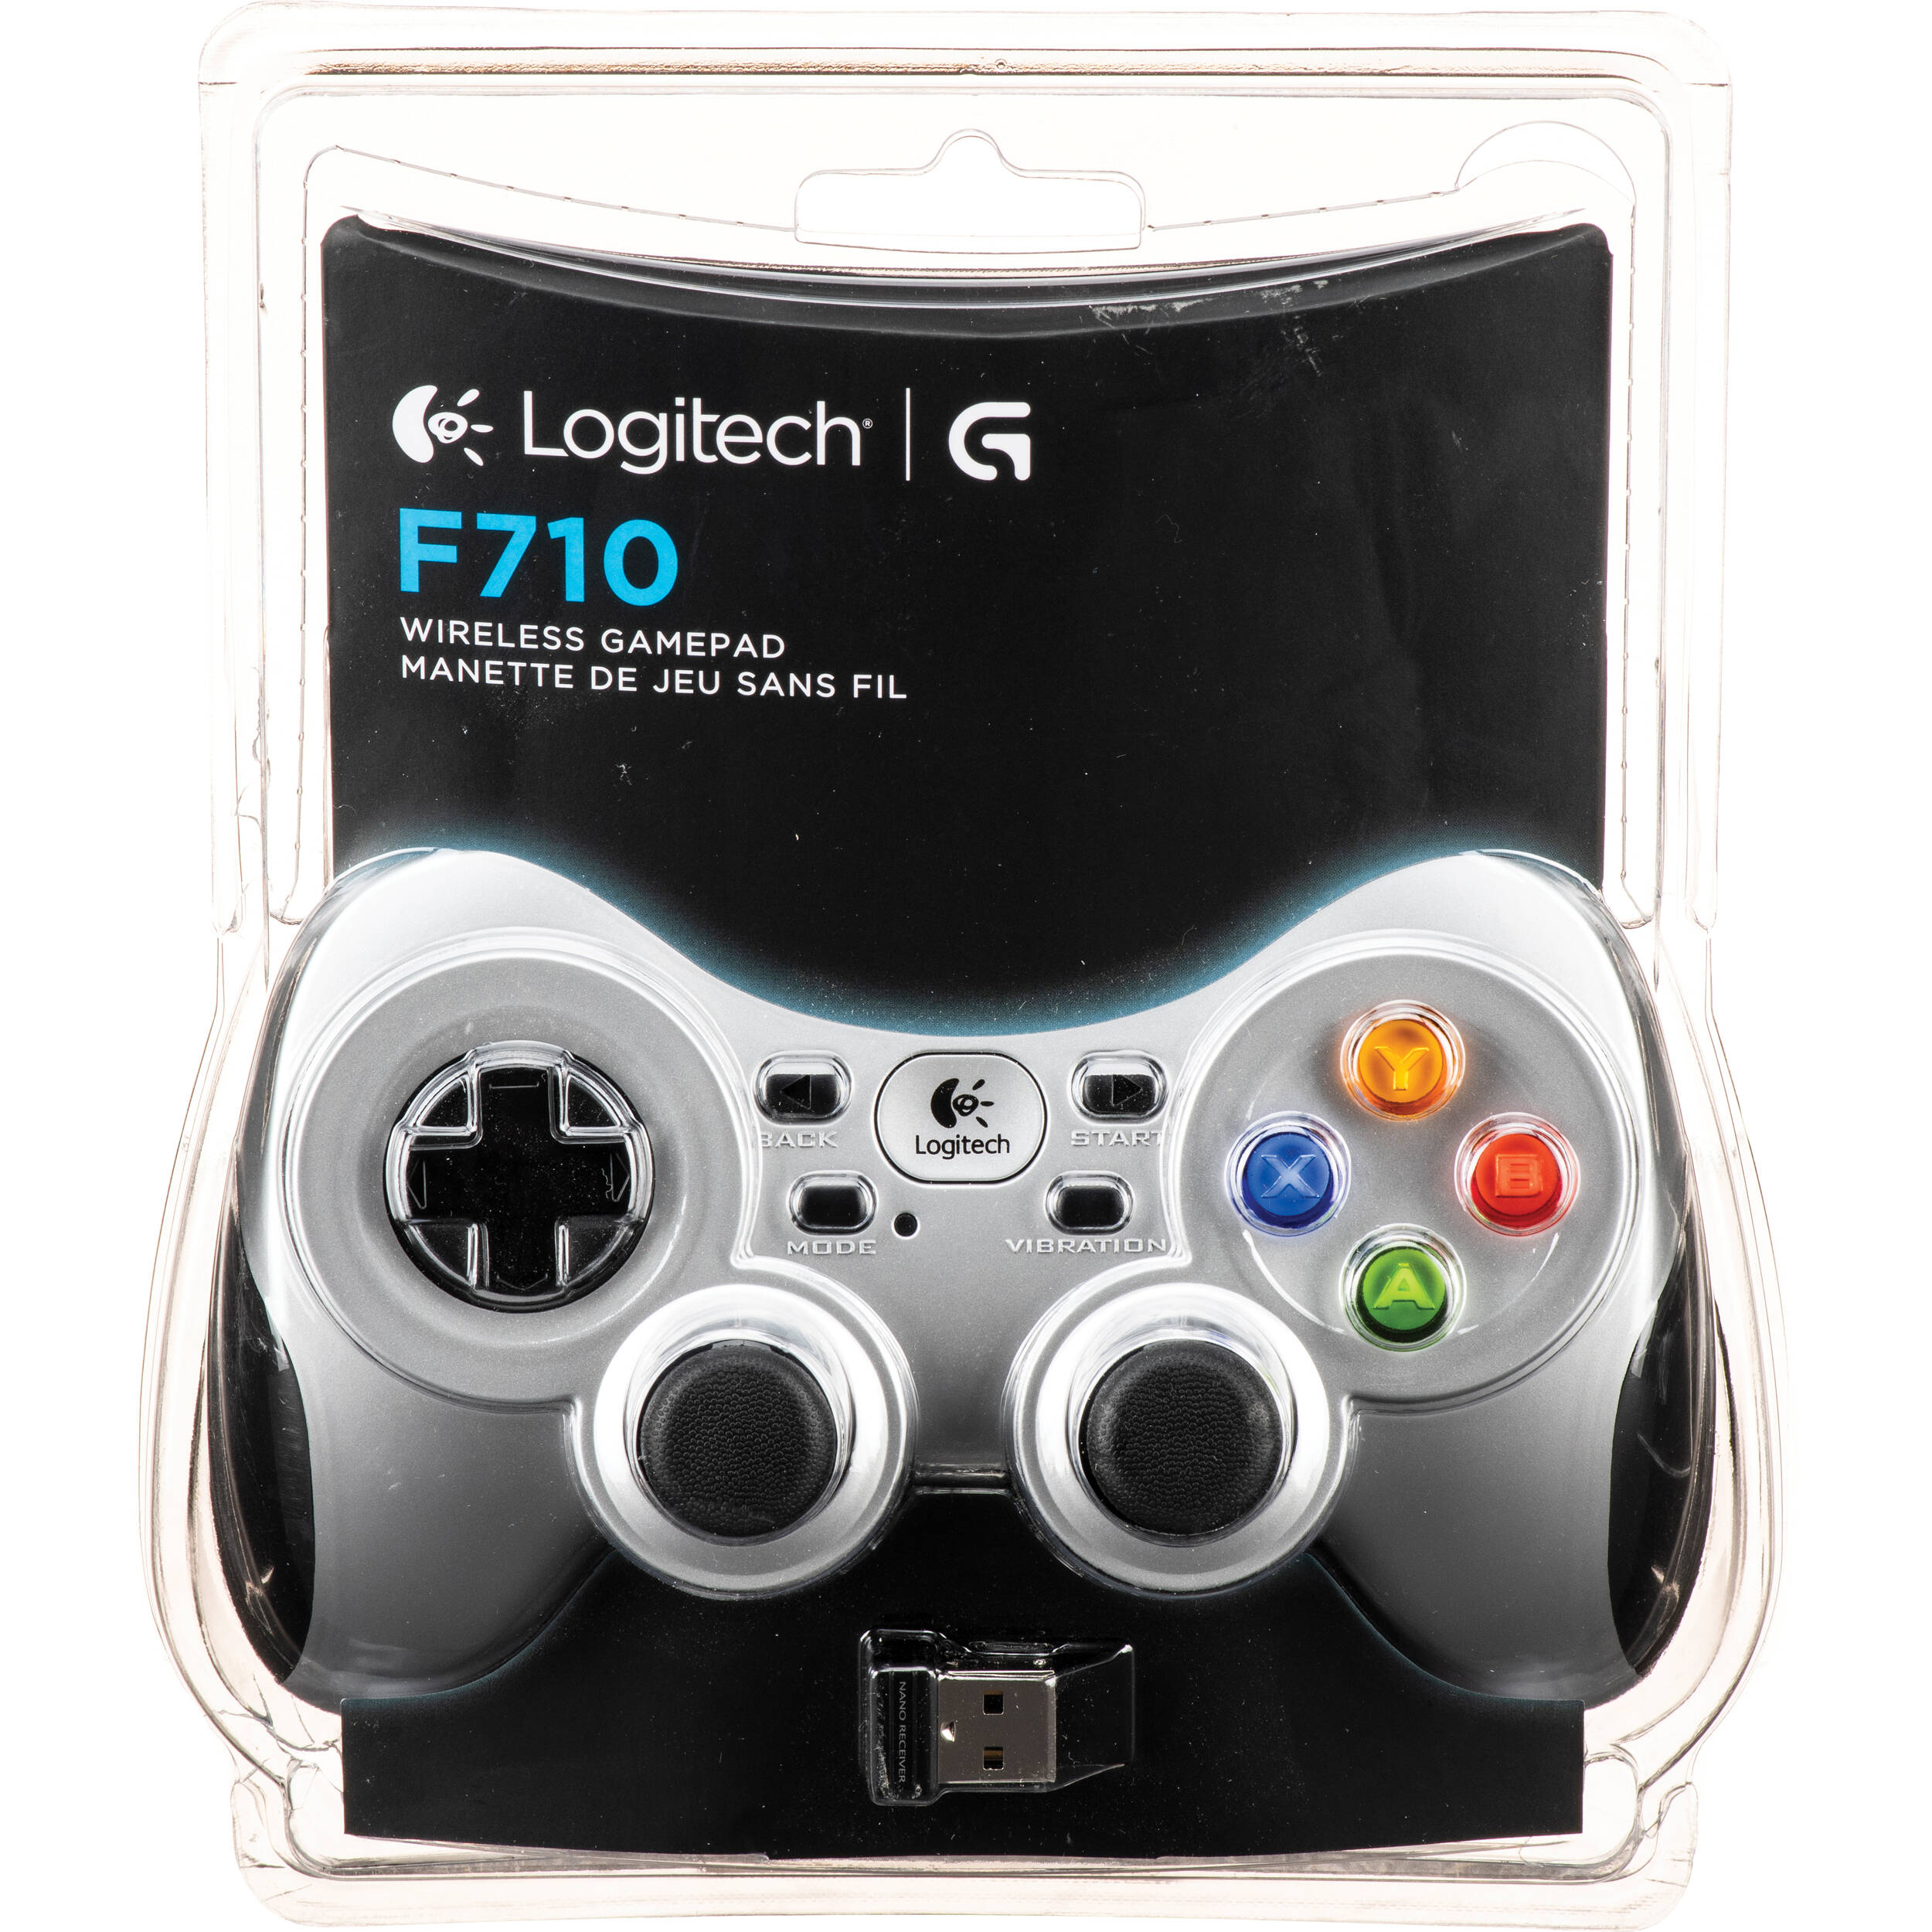 Logitech profiler alternatives and similar software.